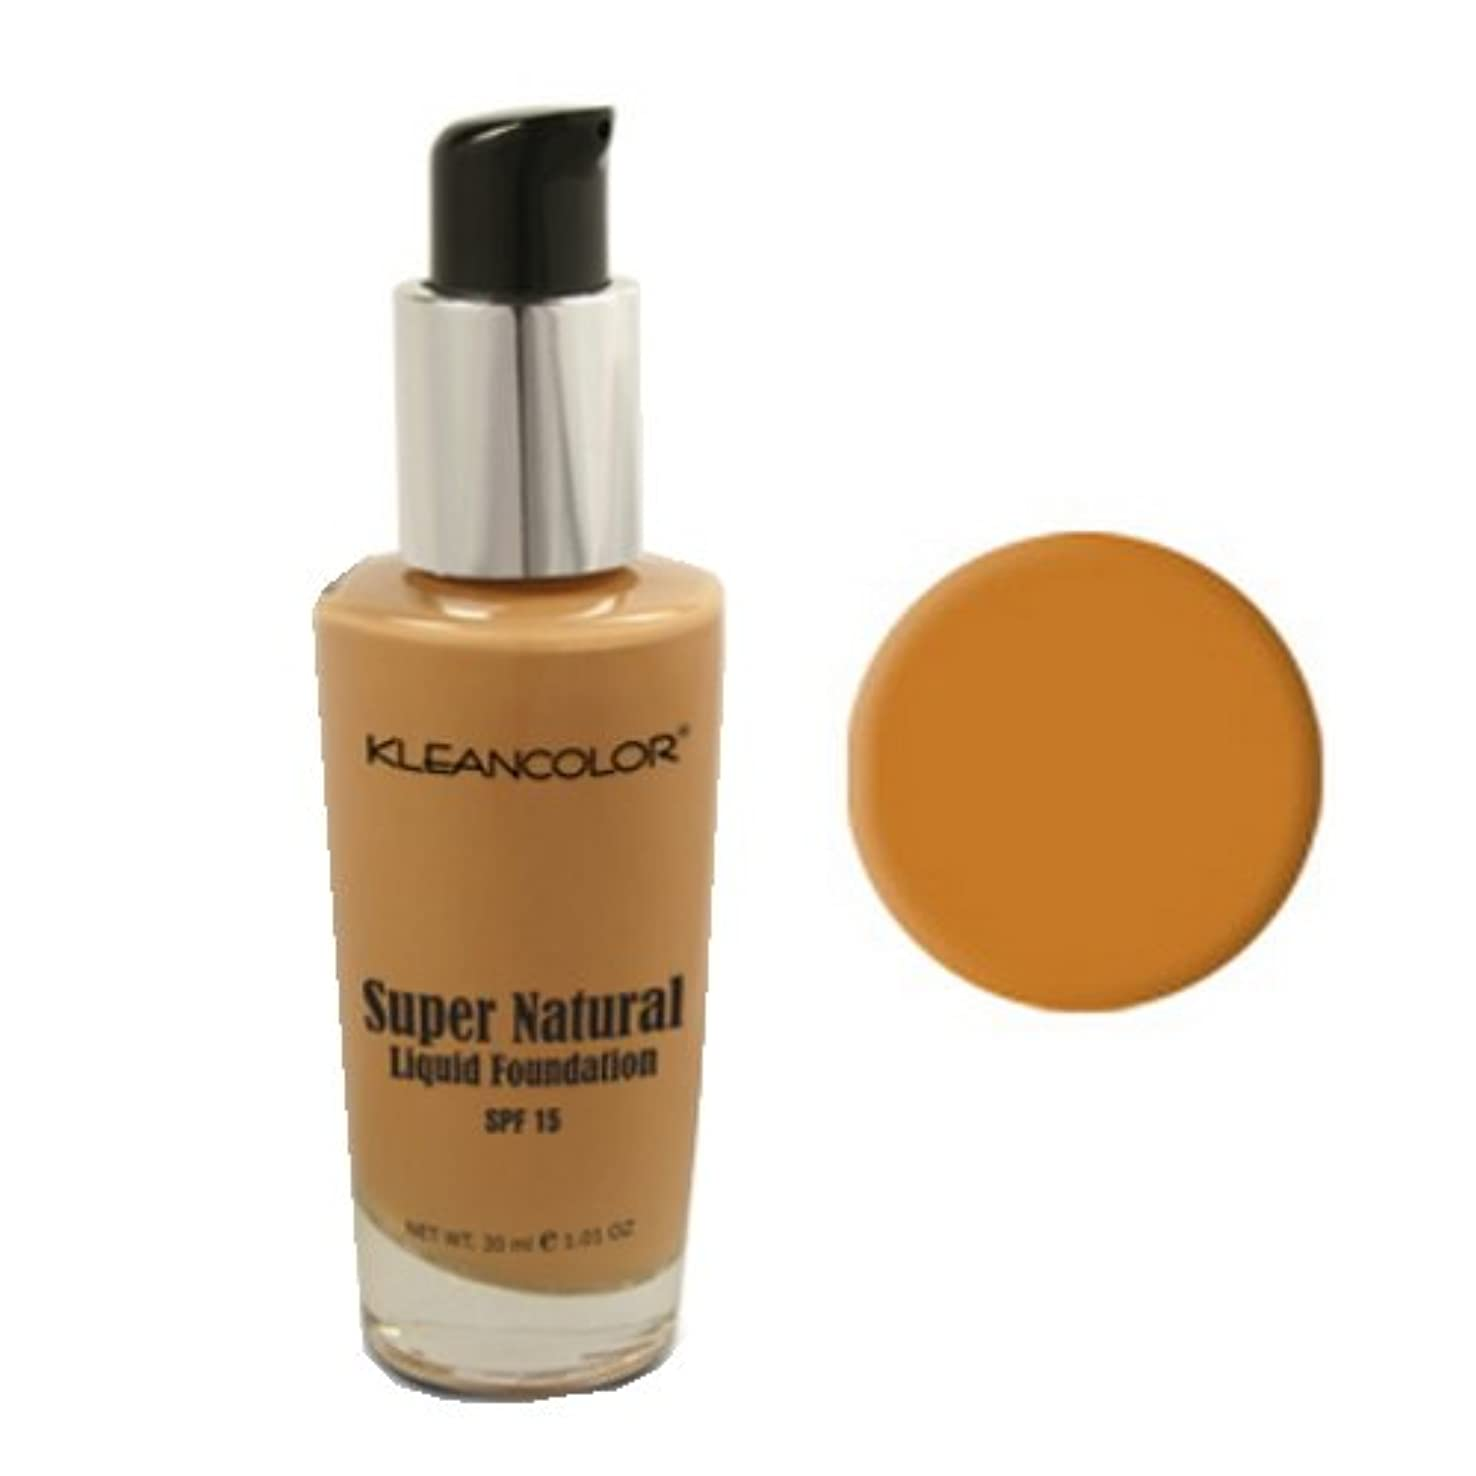 支配的うがい薬開拓者KLEANCOLOR Super Natural Liquid Foundation - Espresso (並行輸入品)